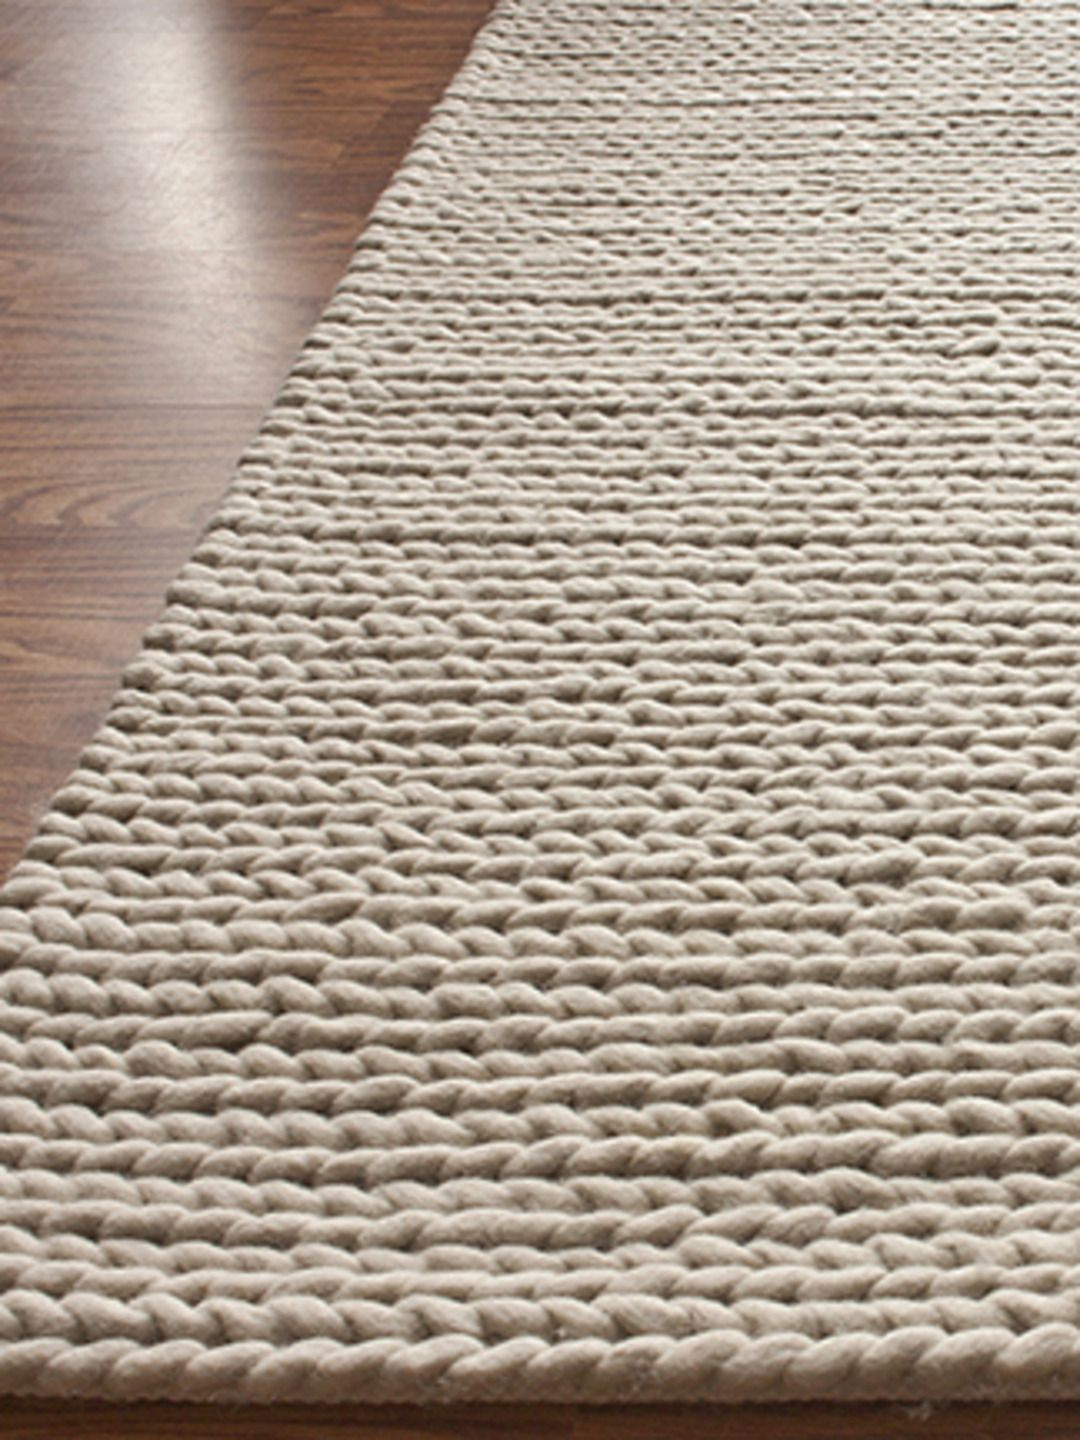 Chunky Cable Hand Woven Rug Cool Rugs Woven Rug Rugs